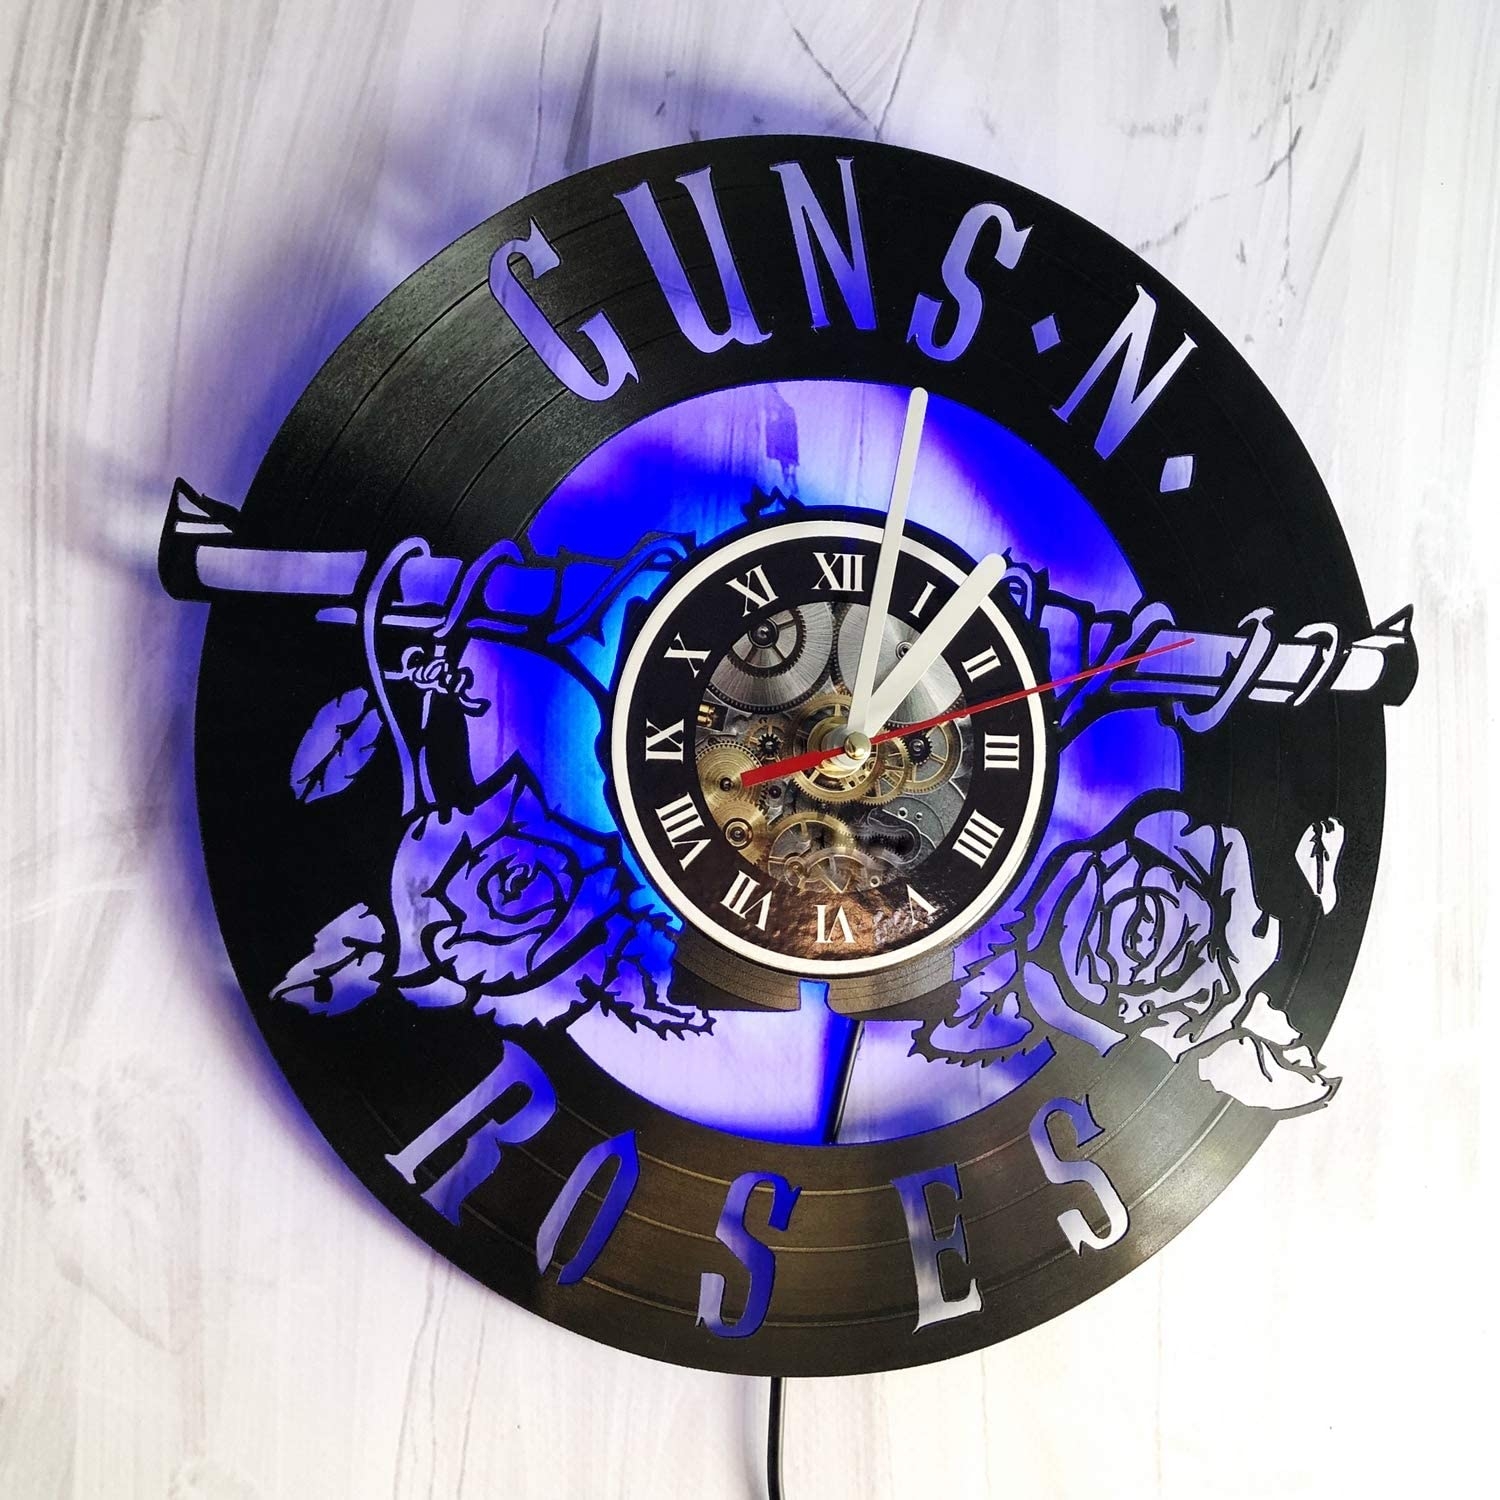 Valentines1934 Guns'N'Roses LED Wall Lights, Night Light, Wall Lamp, Handmade LED Vinyl Wall Clock Remote Control LED Vintage Backlight Art Cool Living Room Interior Decor (Blue) (Blue)